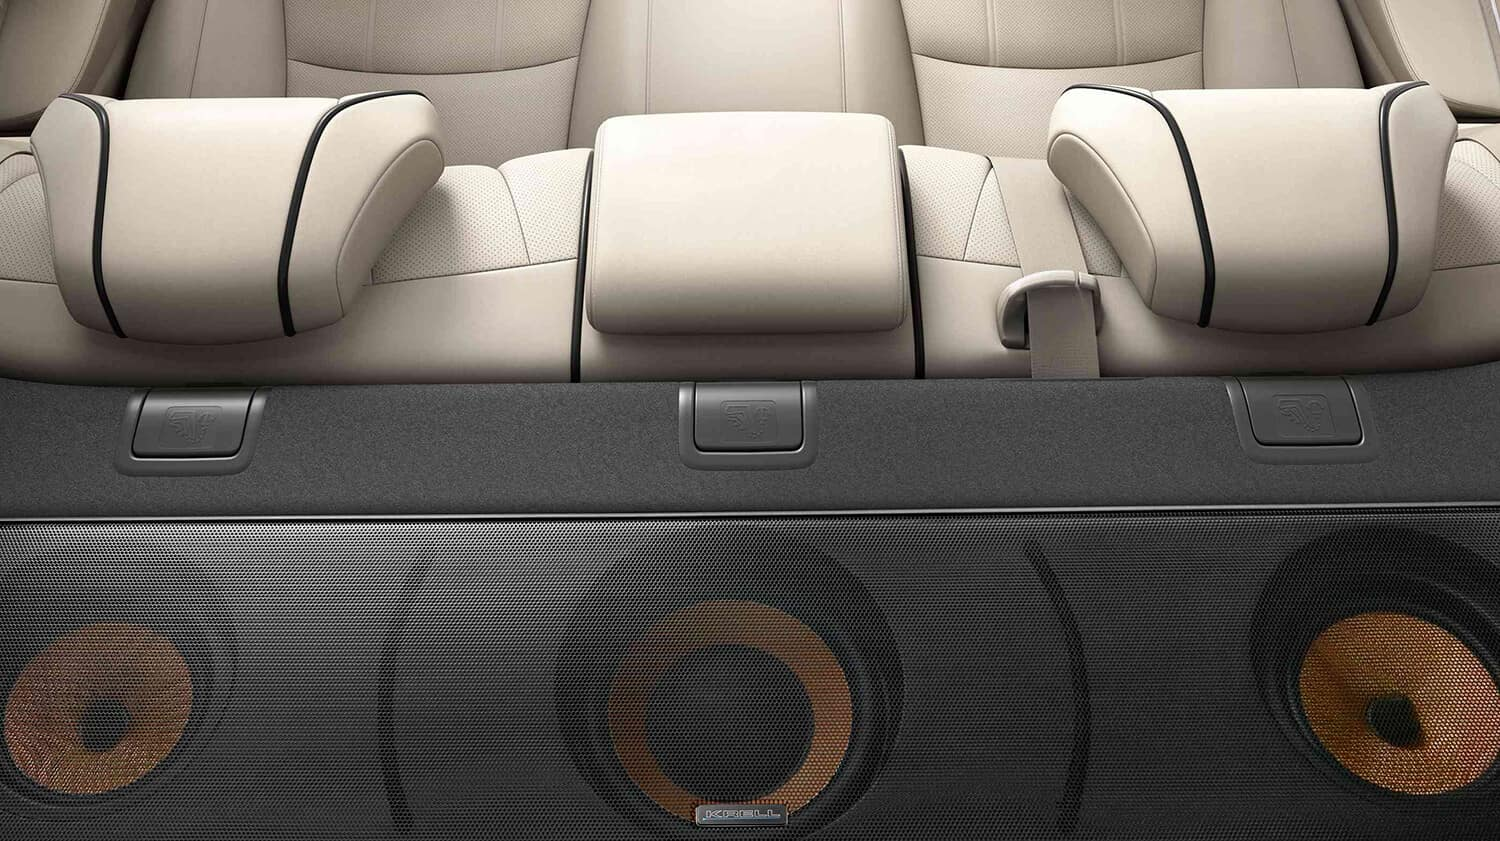 2018 Acura RLX Interior Audio System